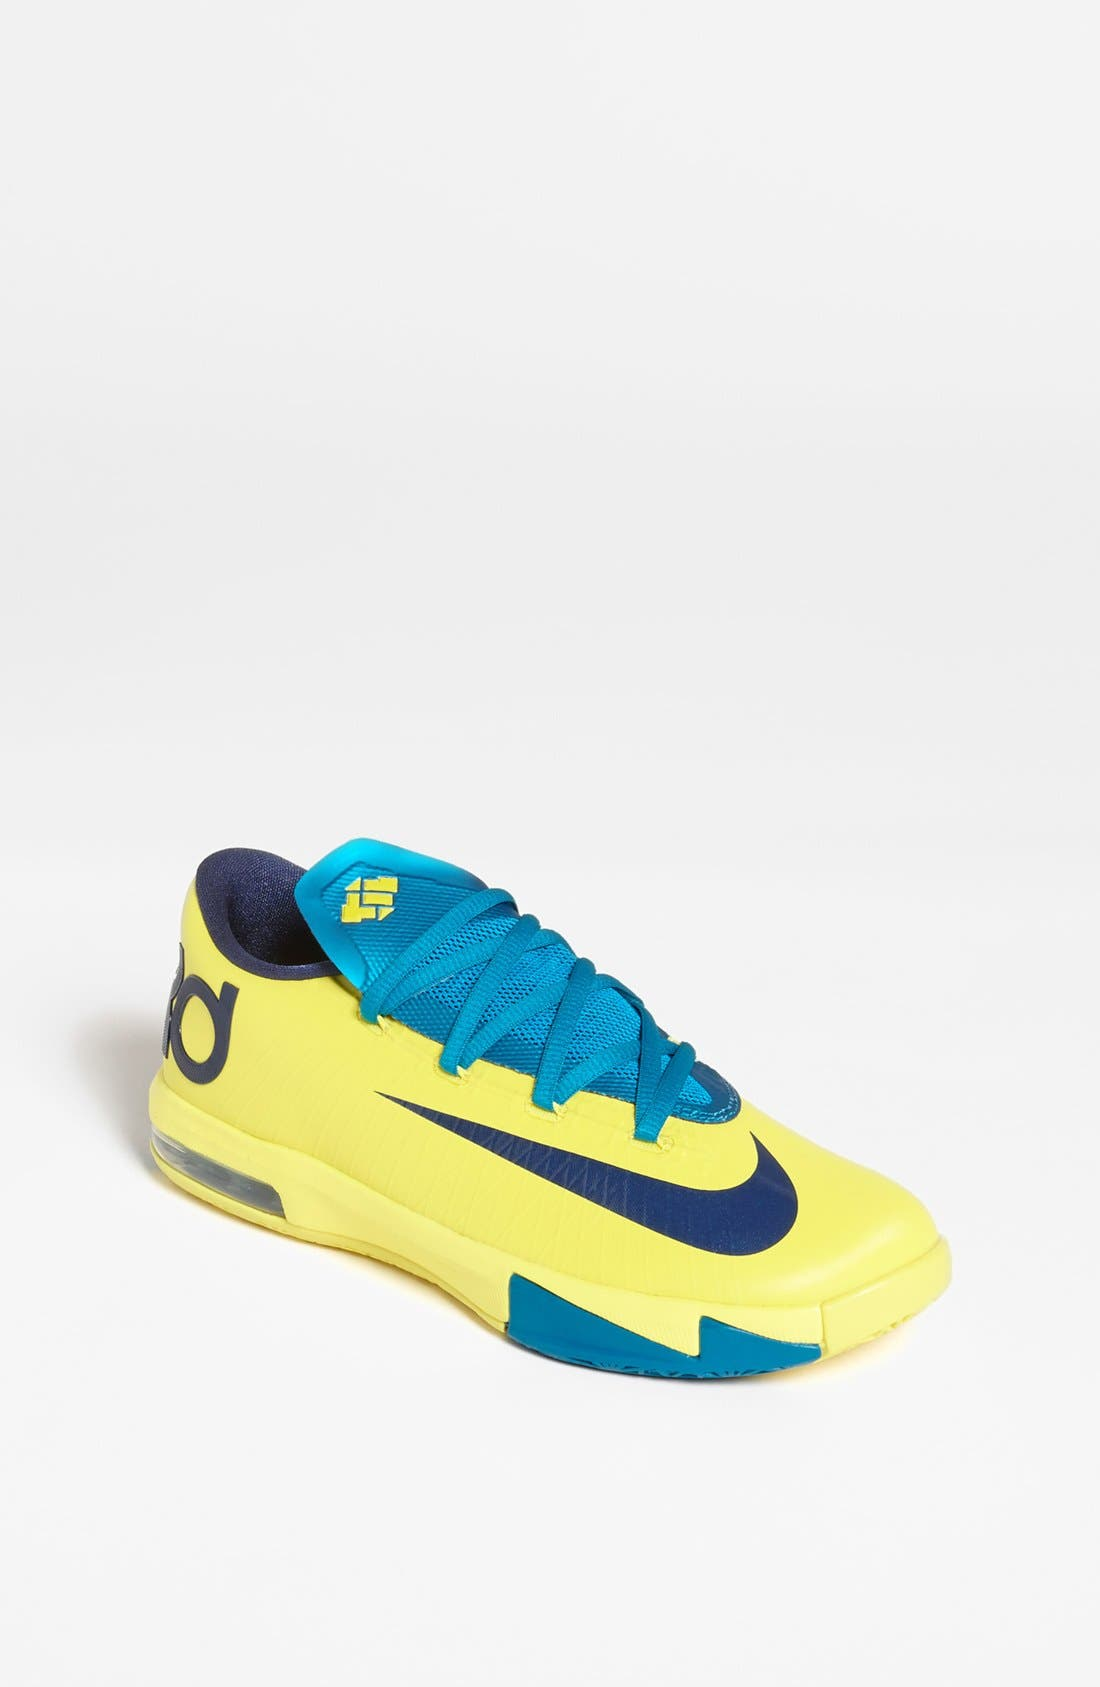 Alternate Image 1 Selected - Nike 'KD VI' Basketball Shoe (Big Kid)